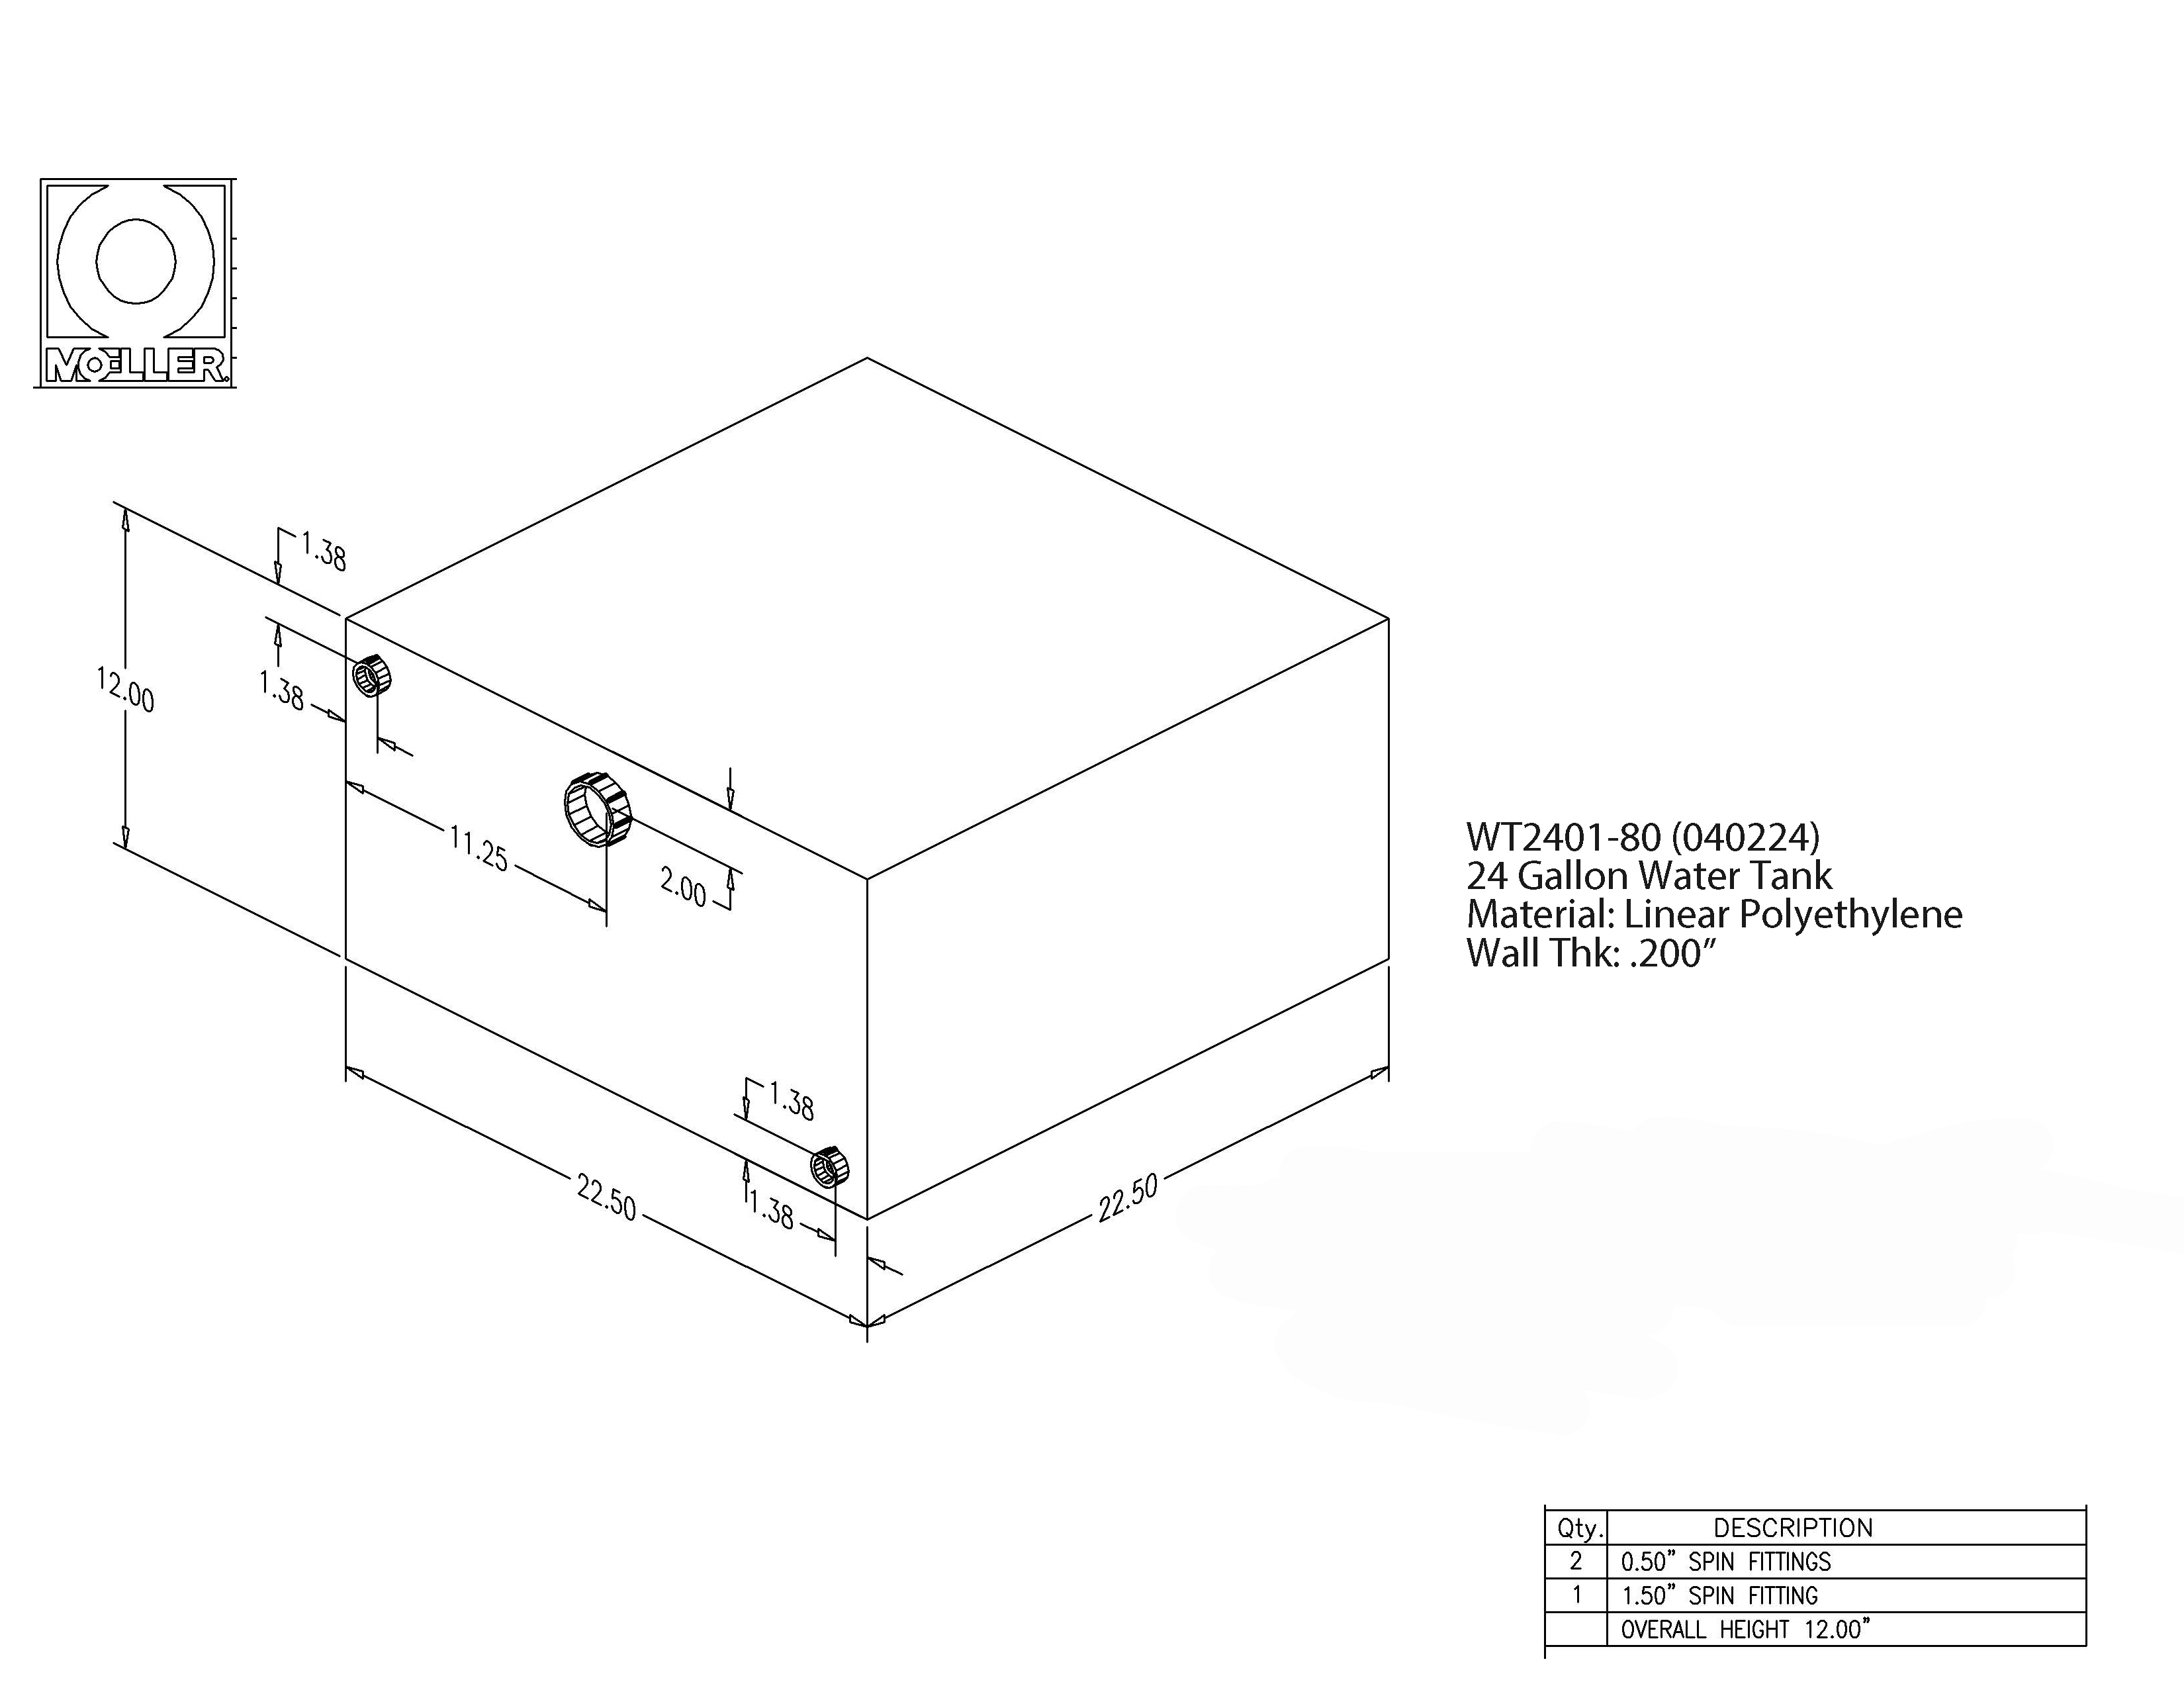 24 Gallon Rectangular Shaped Waste/Water Tank, 22.5″x22.5″x12″, WT2401-80 (040224)